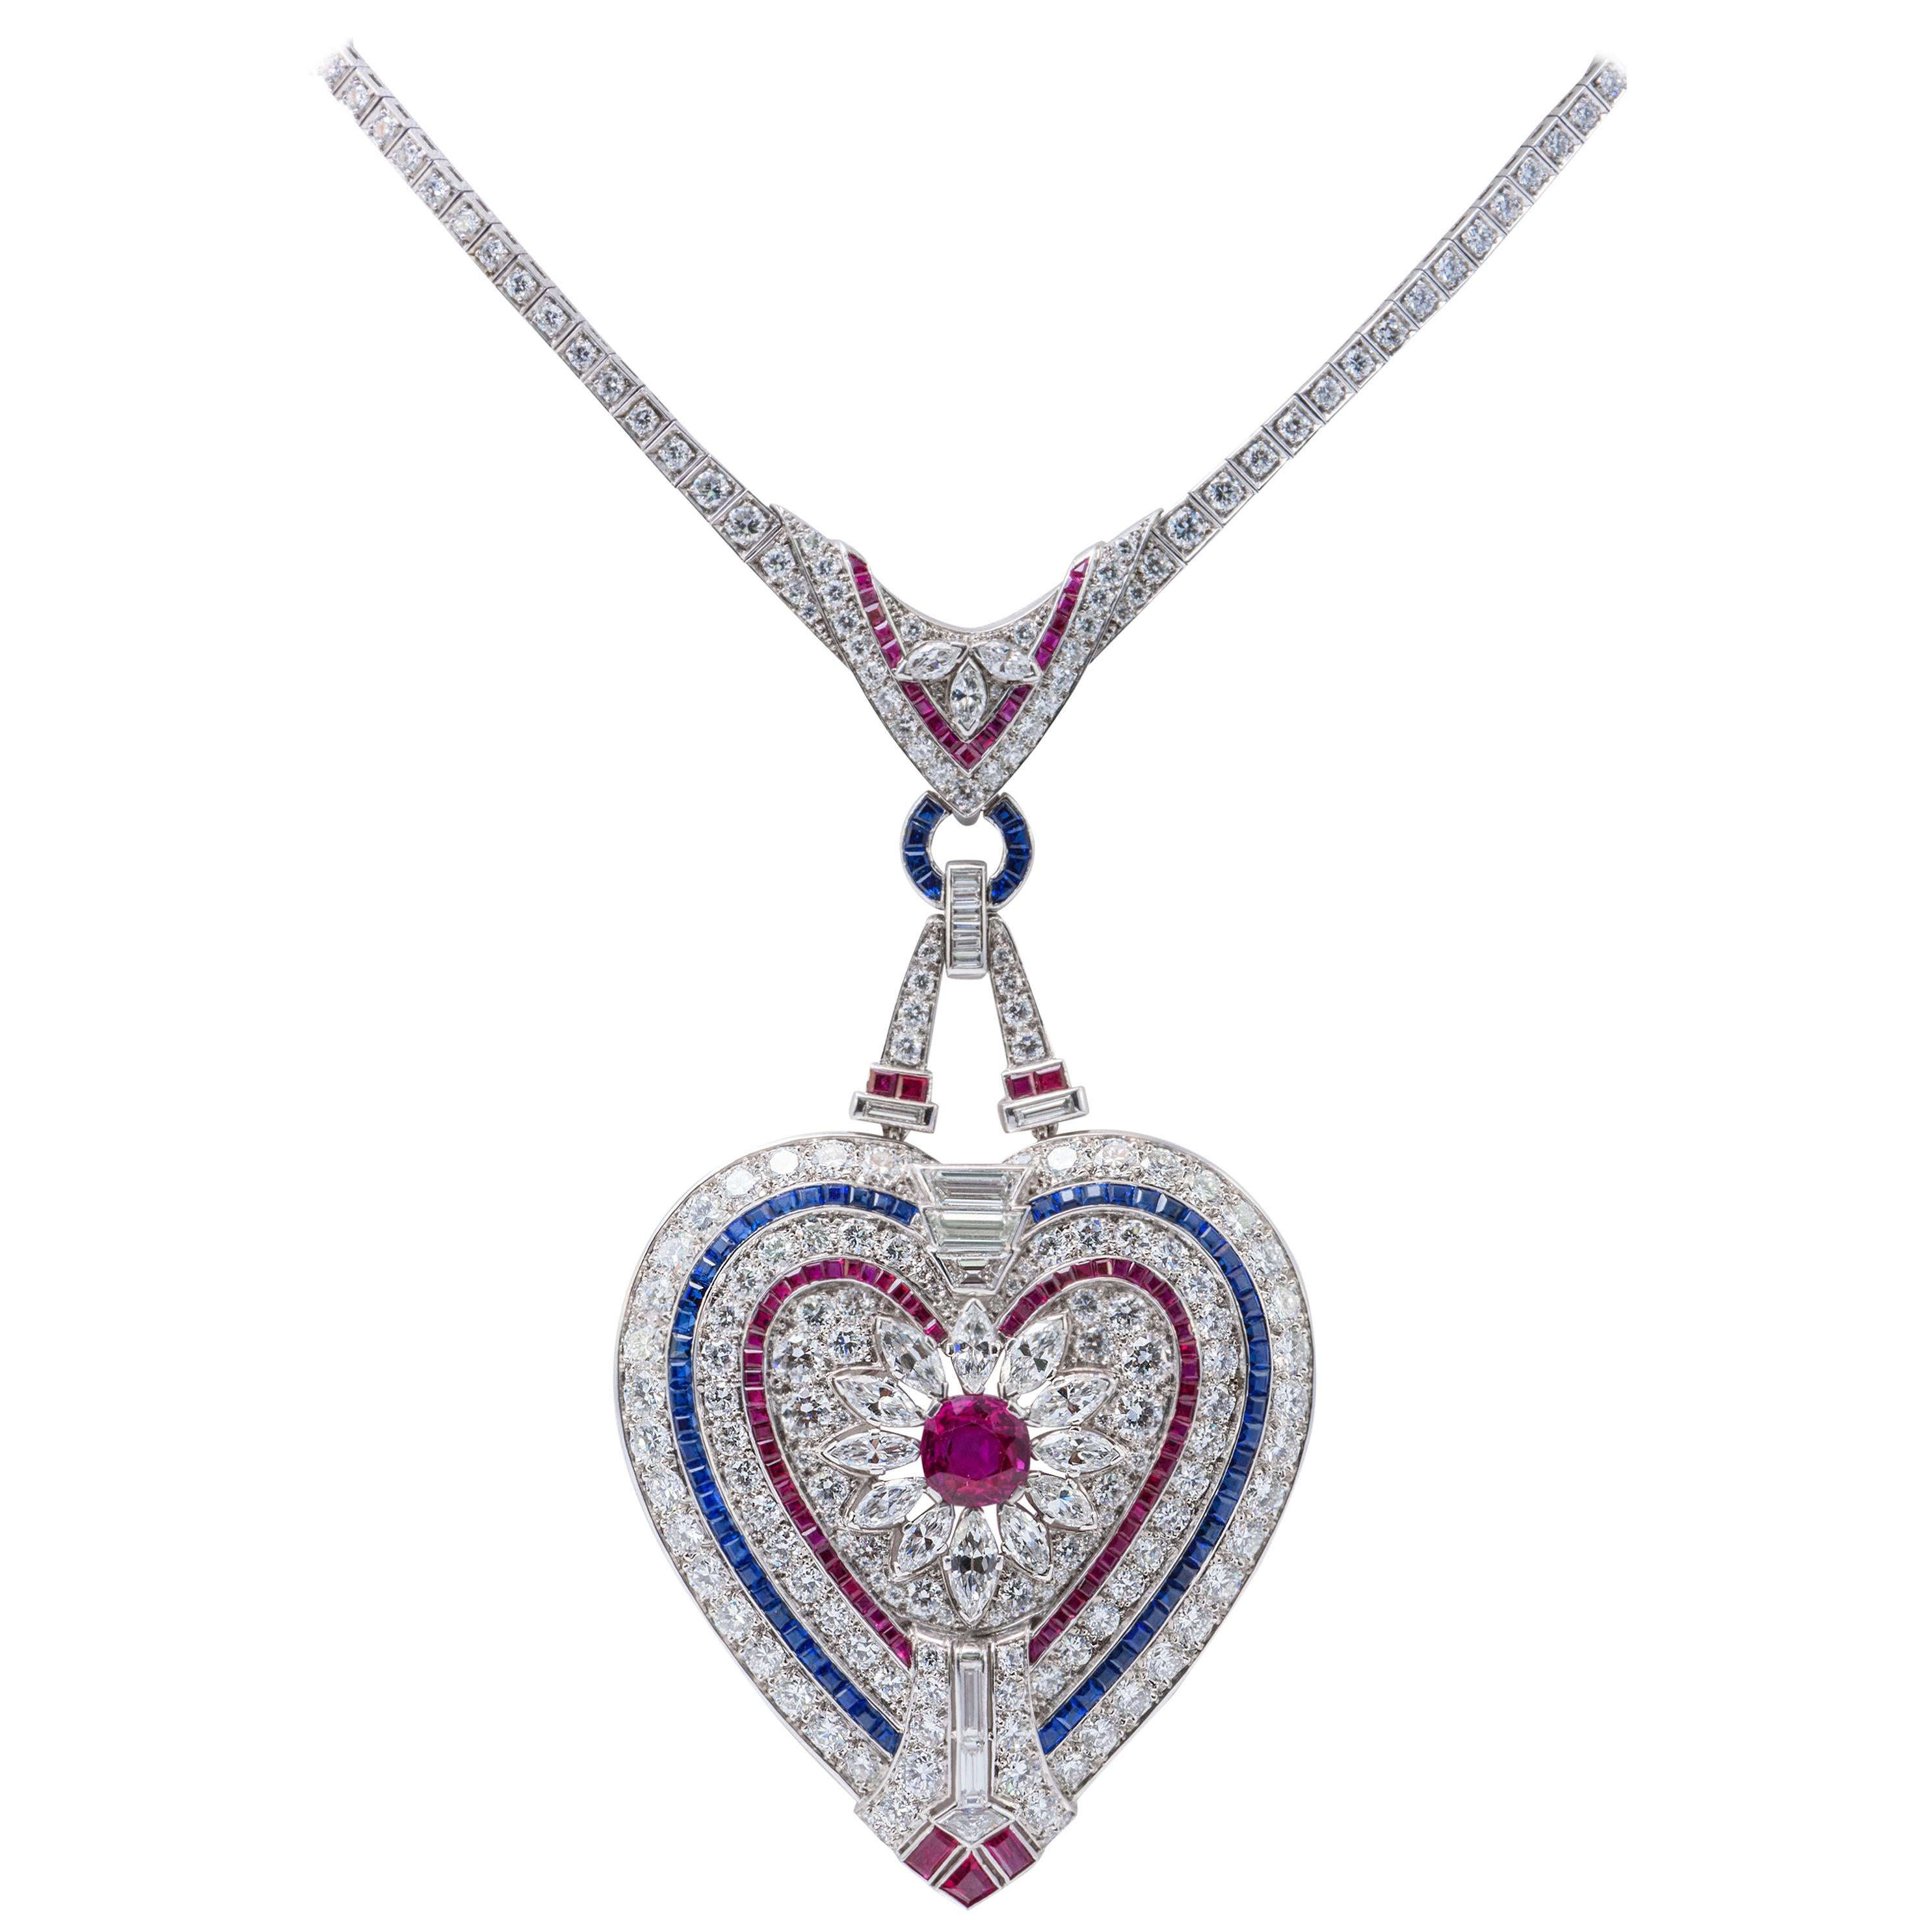 b6c54a28c Important Platinum Diamond Ruby and Sapphire Heart Pendant Necklace at  1stdibs